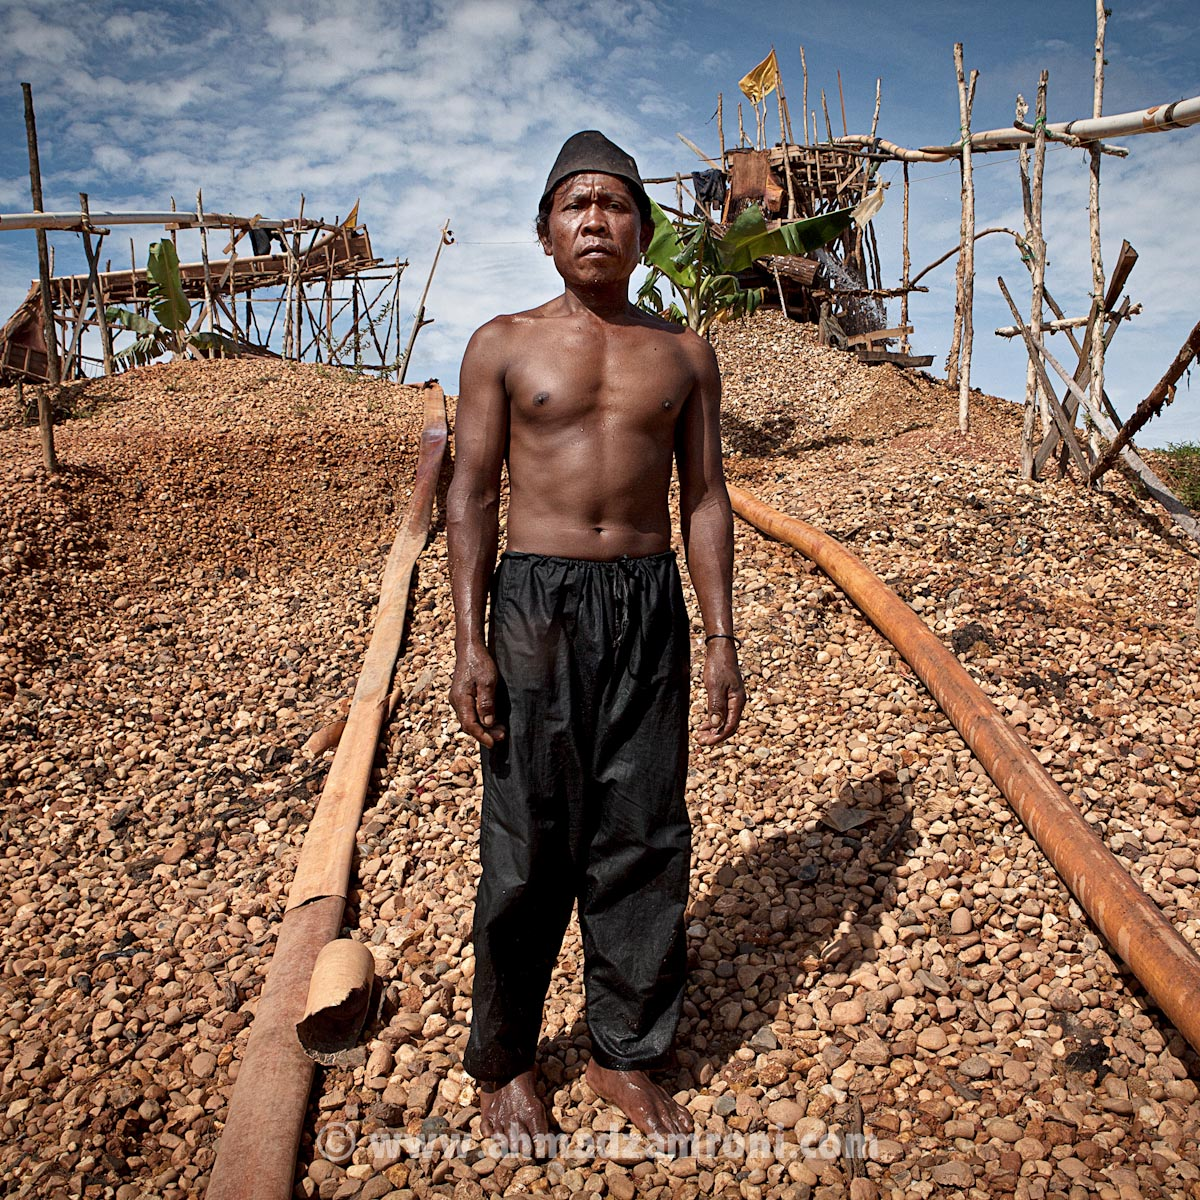 Samsul, 48 yo work as traditional miner for 15 years.